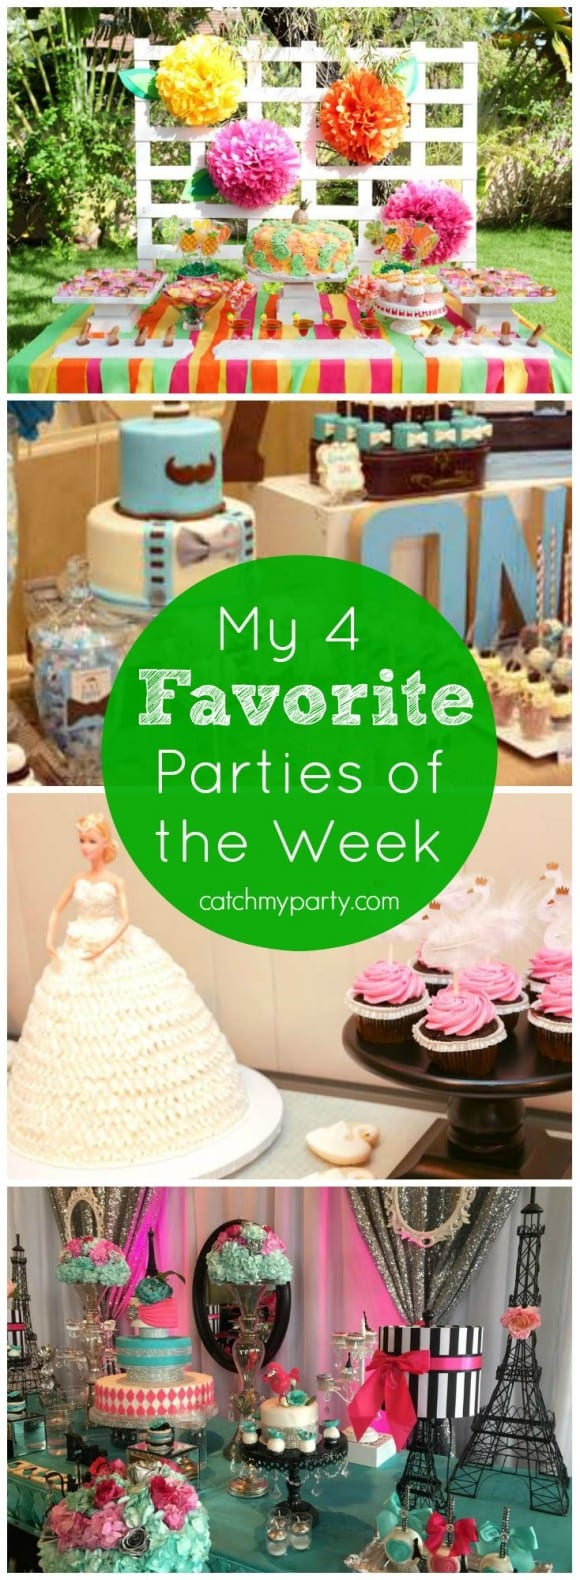 My favorite parties this week include a Mexican Fiesta Party, a mustache bash, a Swan Lake ballet party, and a glam Paris Quinceanera! | Catchmyparty.com